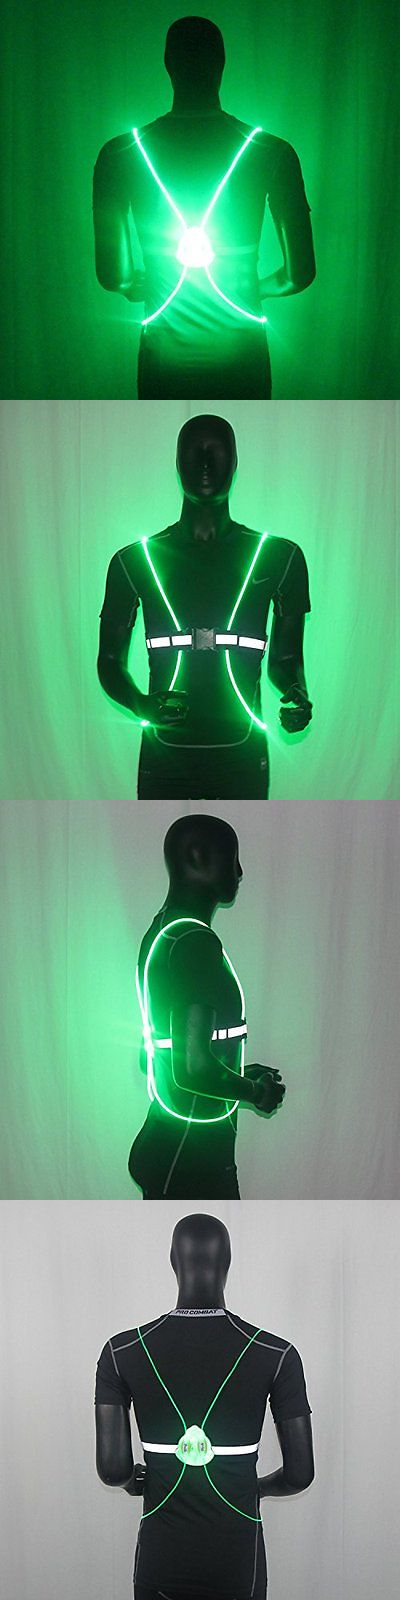 Safety And Reflective Gear 158951 Rico Lighting Led Vest